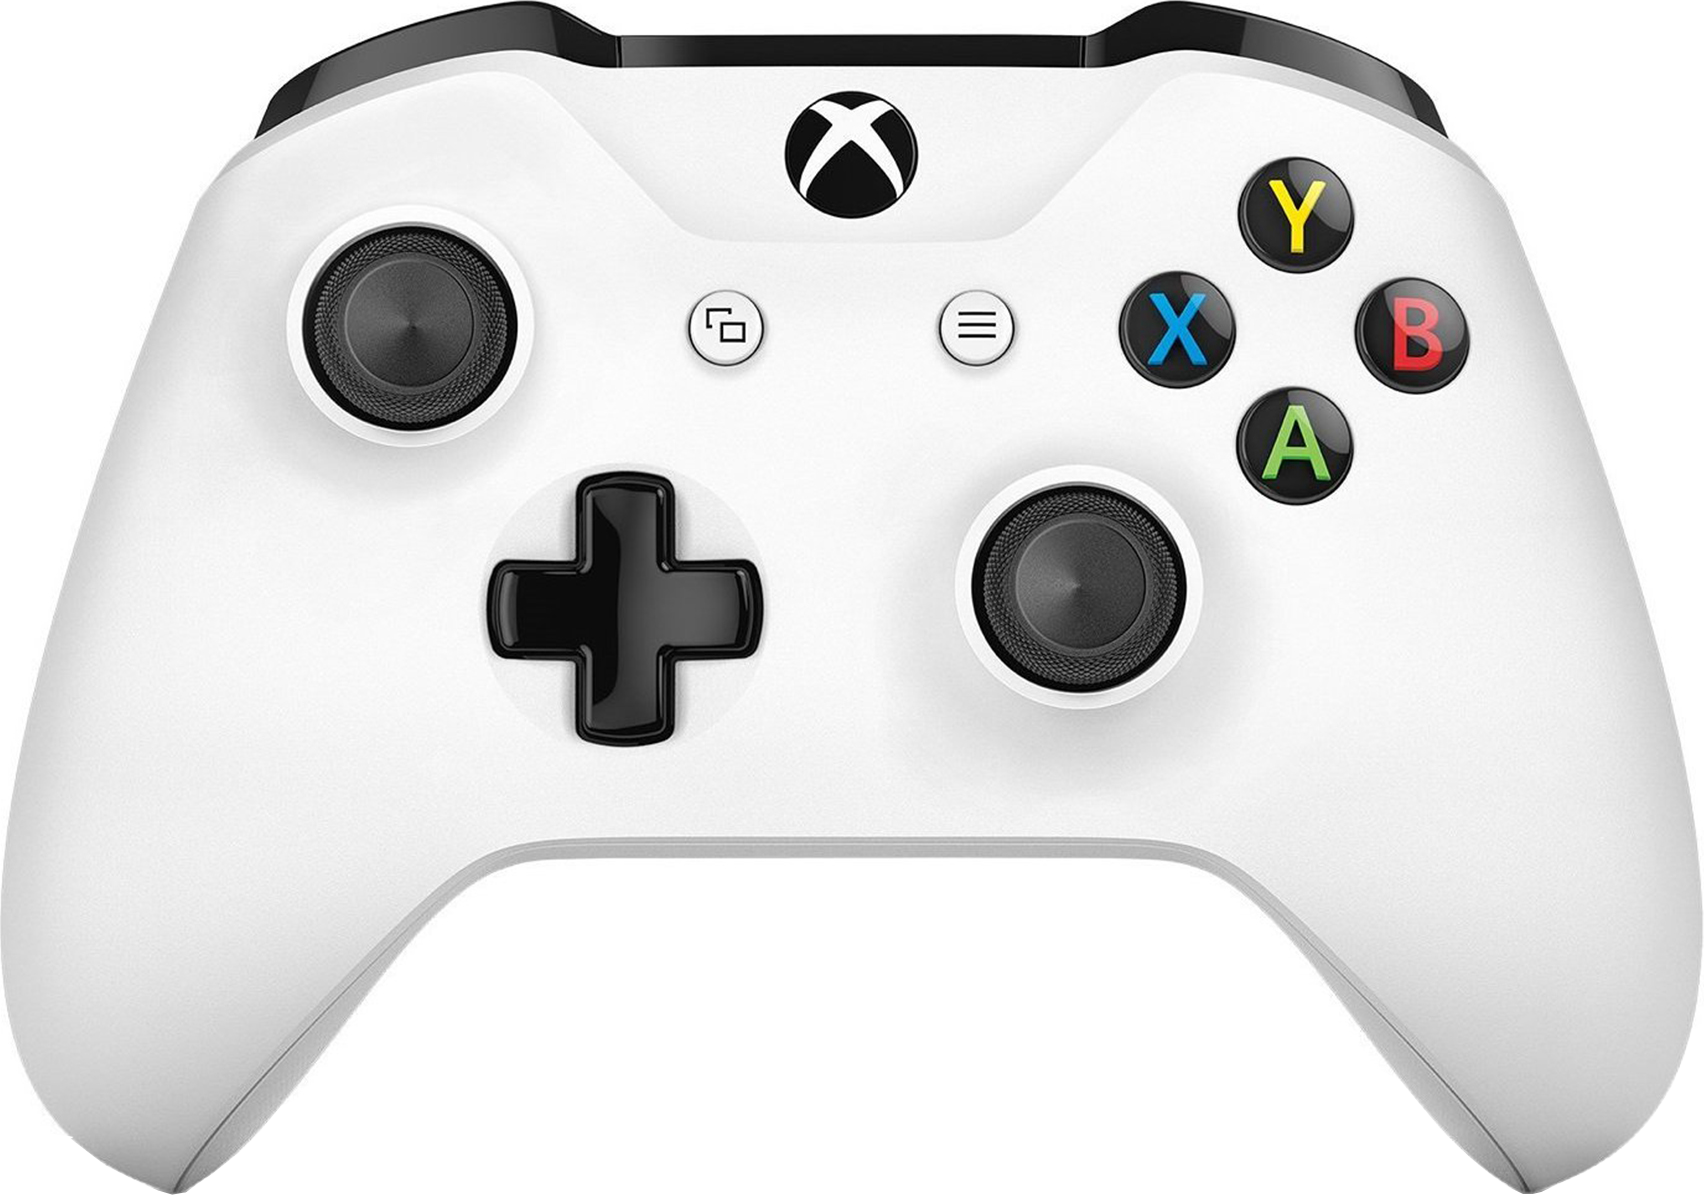 Xbox Wireless Controller v3 (White, Bluetooth)